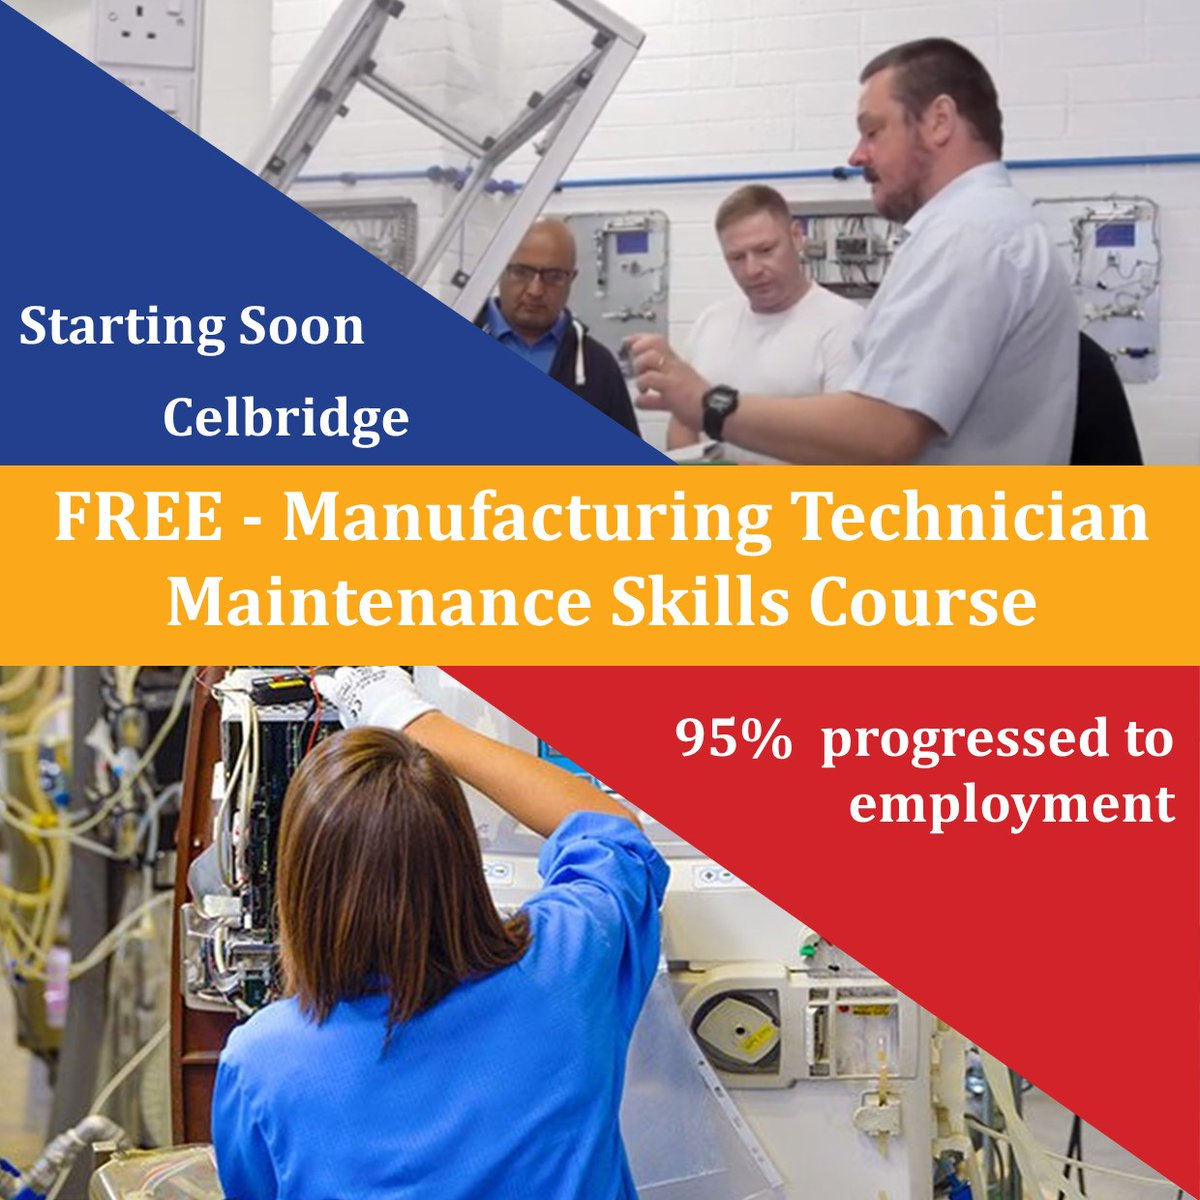 AMAZING opportunity coming up soon in #Celbridge! Female #ManufacturingTechnician Maintenance Skills - starting soon! 95% of candidates progress into relevant employment ✅ FULL-TIME ✅ QQI Lvl 6 ✅ 48 weeks Click to apply https://t.co/FiINv2govF